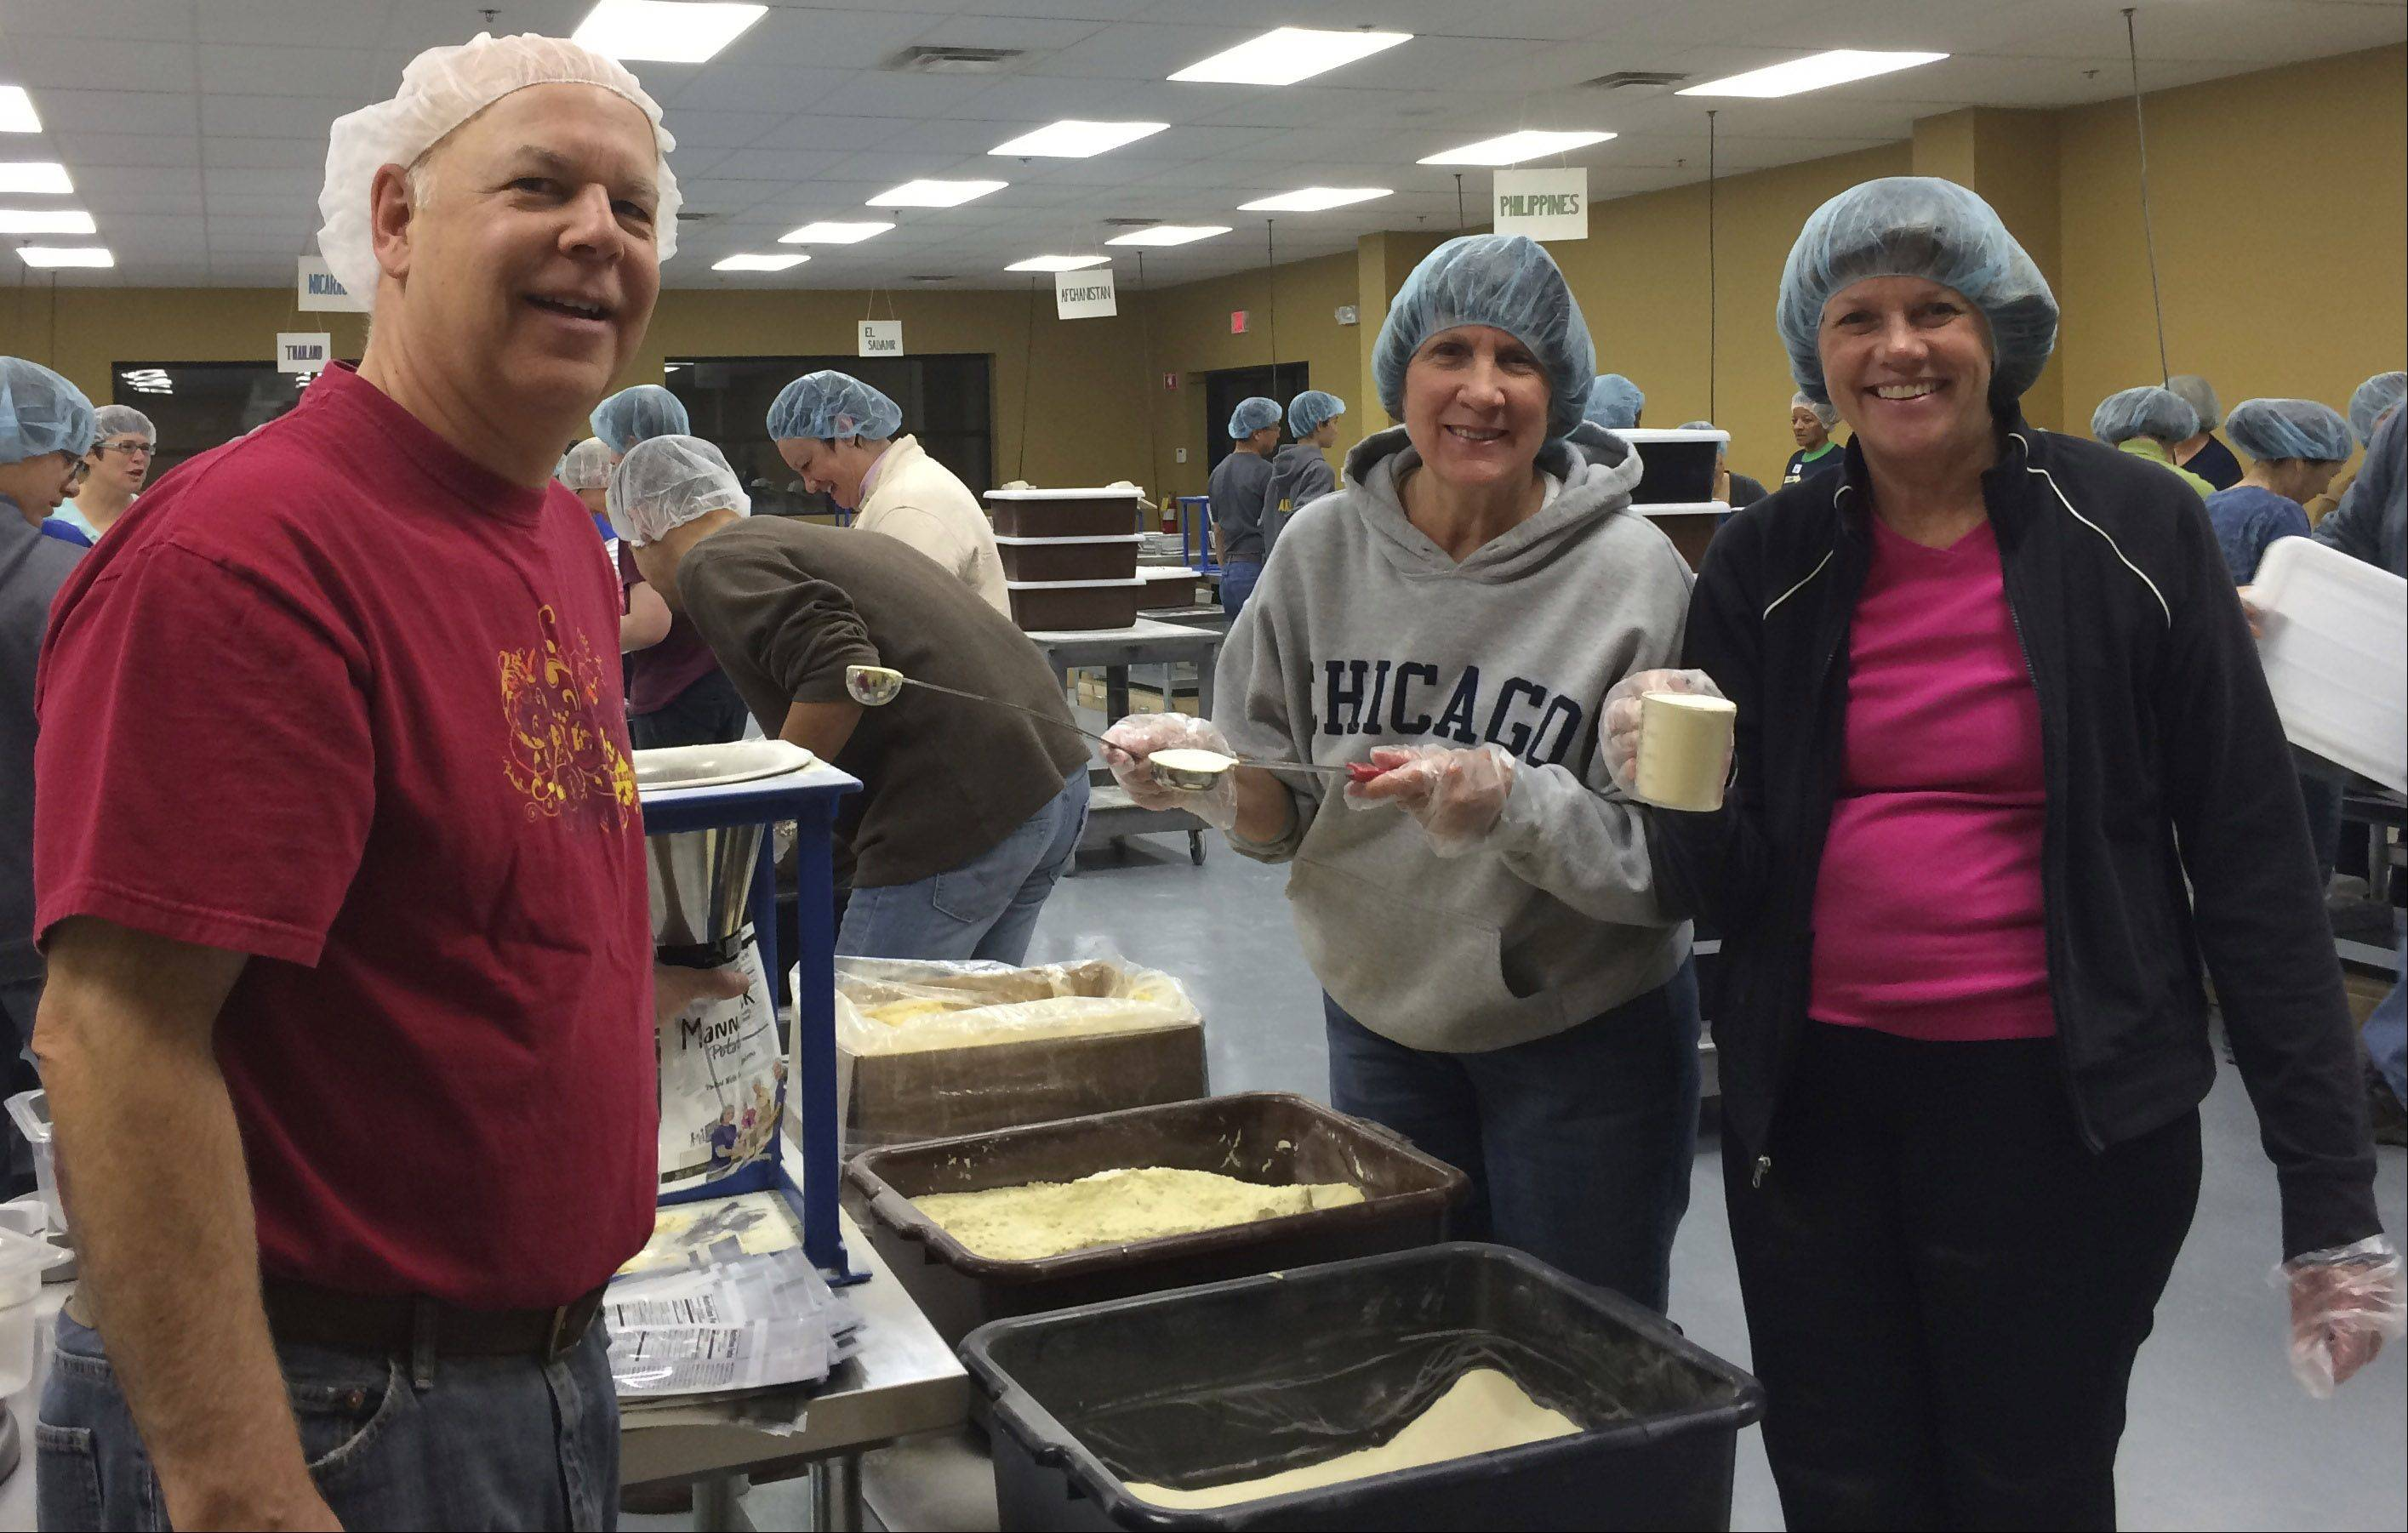 Jeff Whitehead, Nancy Prange and Kathy Whitehead at Libertyville's Feed My Starving Children.